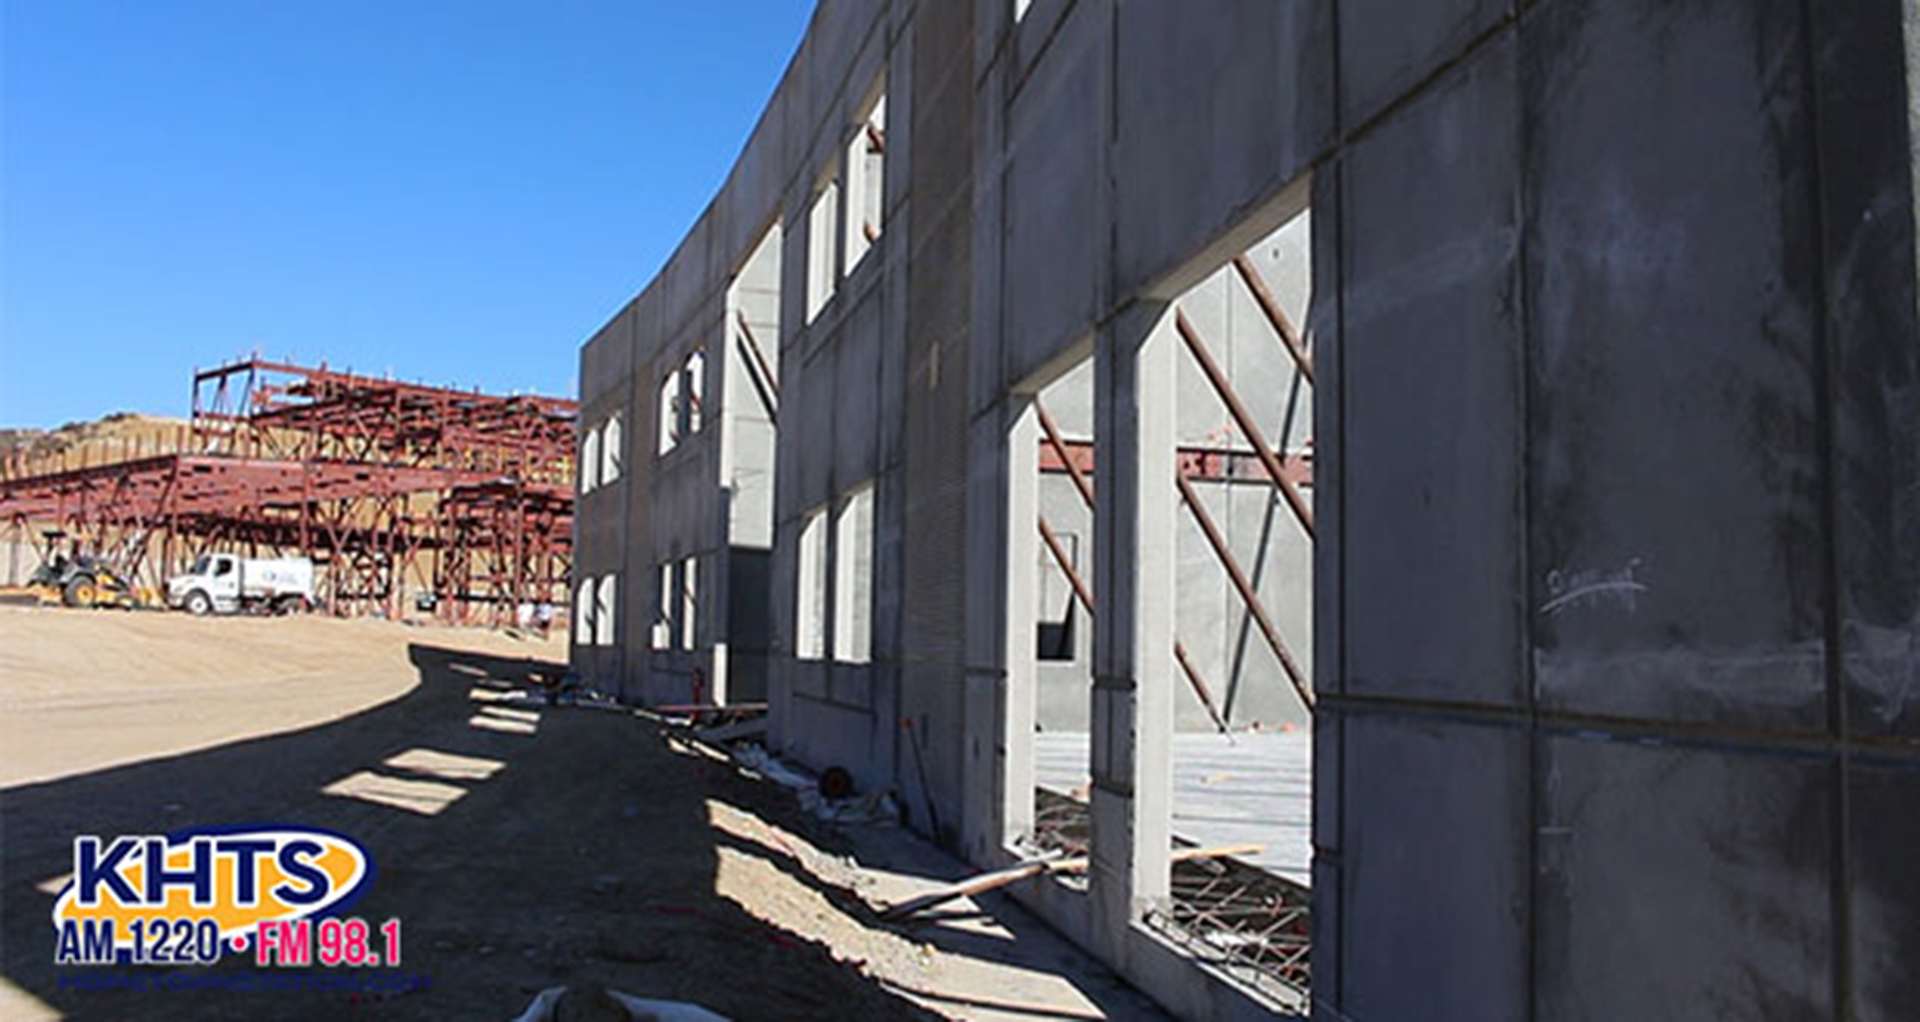 The new Castaic High School under construction.